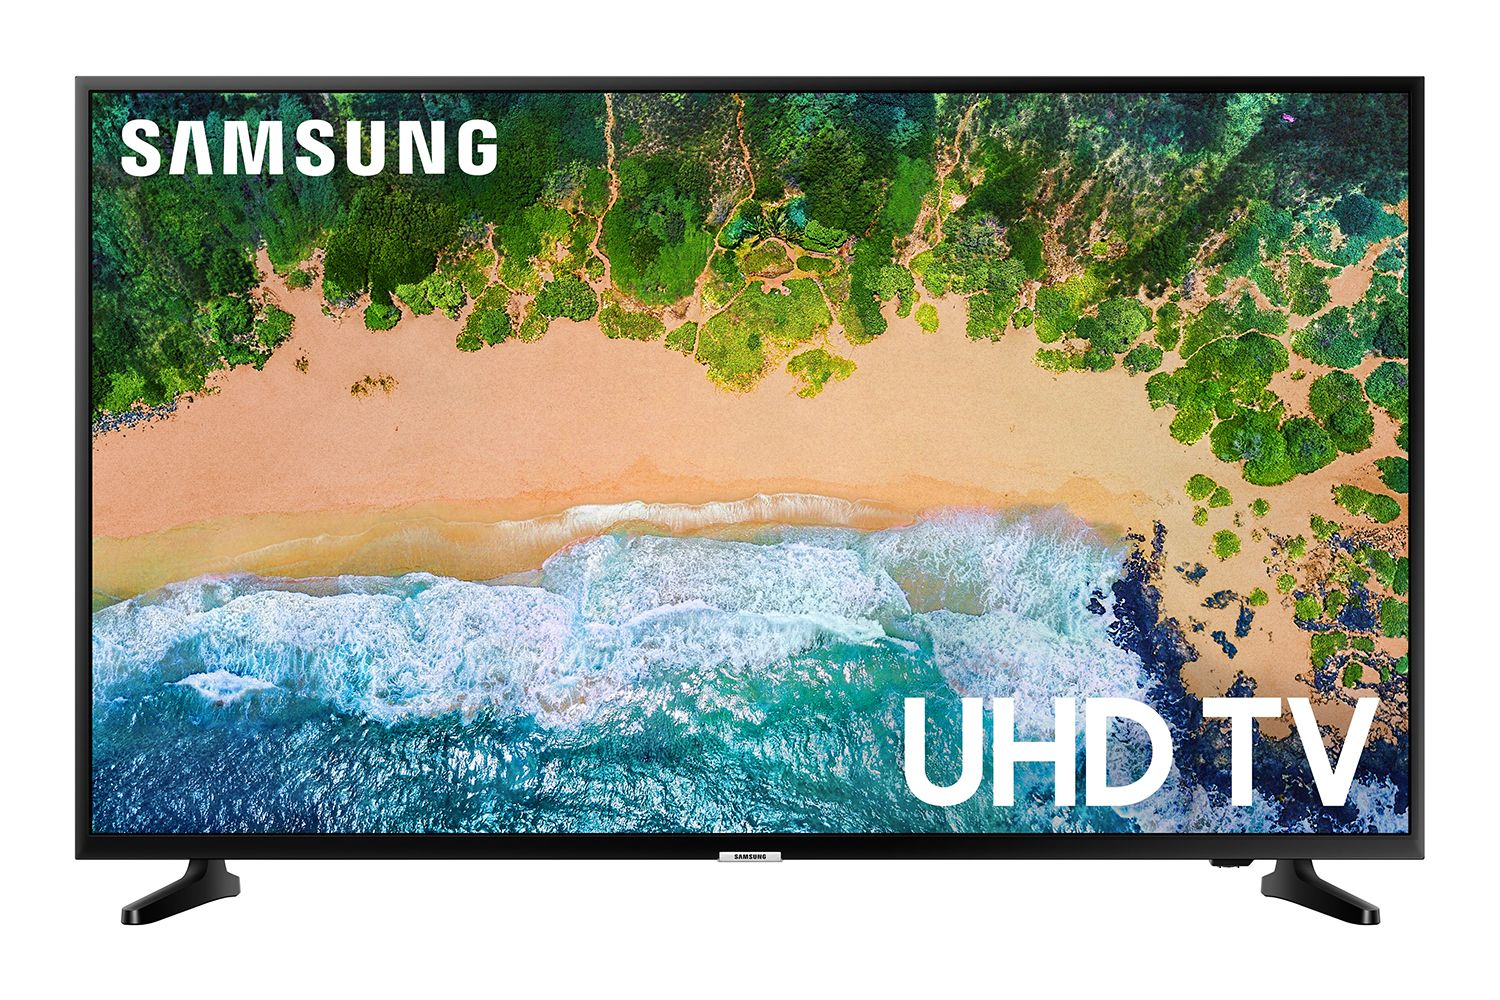 Samsung 43 Class 4k Uhd 2160p Led Smart Tv With Hdr Un43nu6900 Walmart Com In 2020 Smart Tv Led Tv Samsung Uhd Tv Samsung 43 smart 1080p led lcd tv